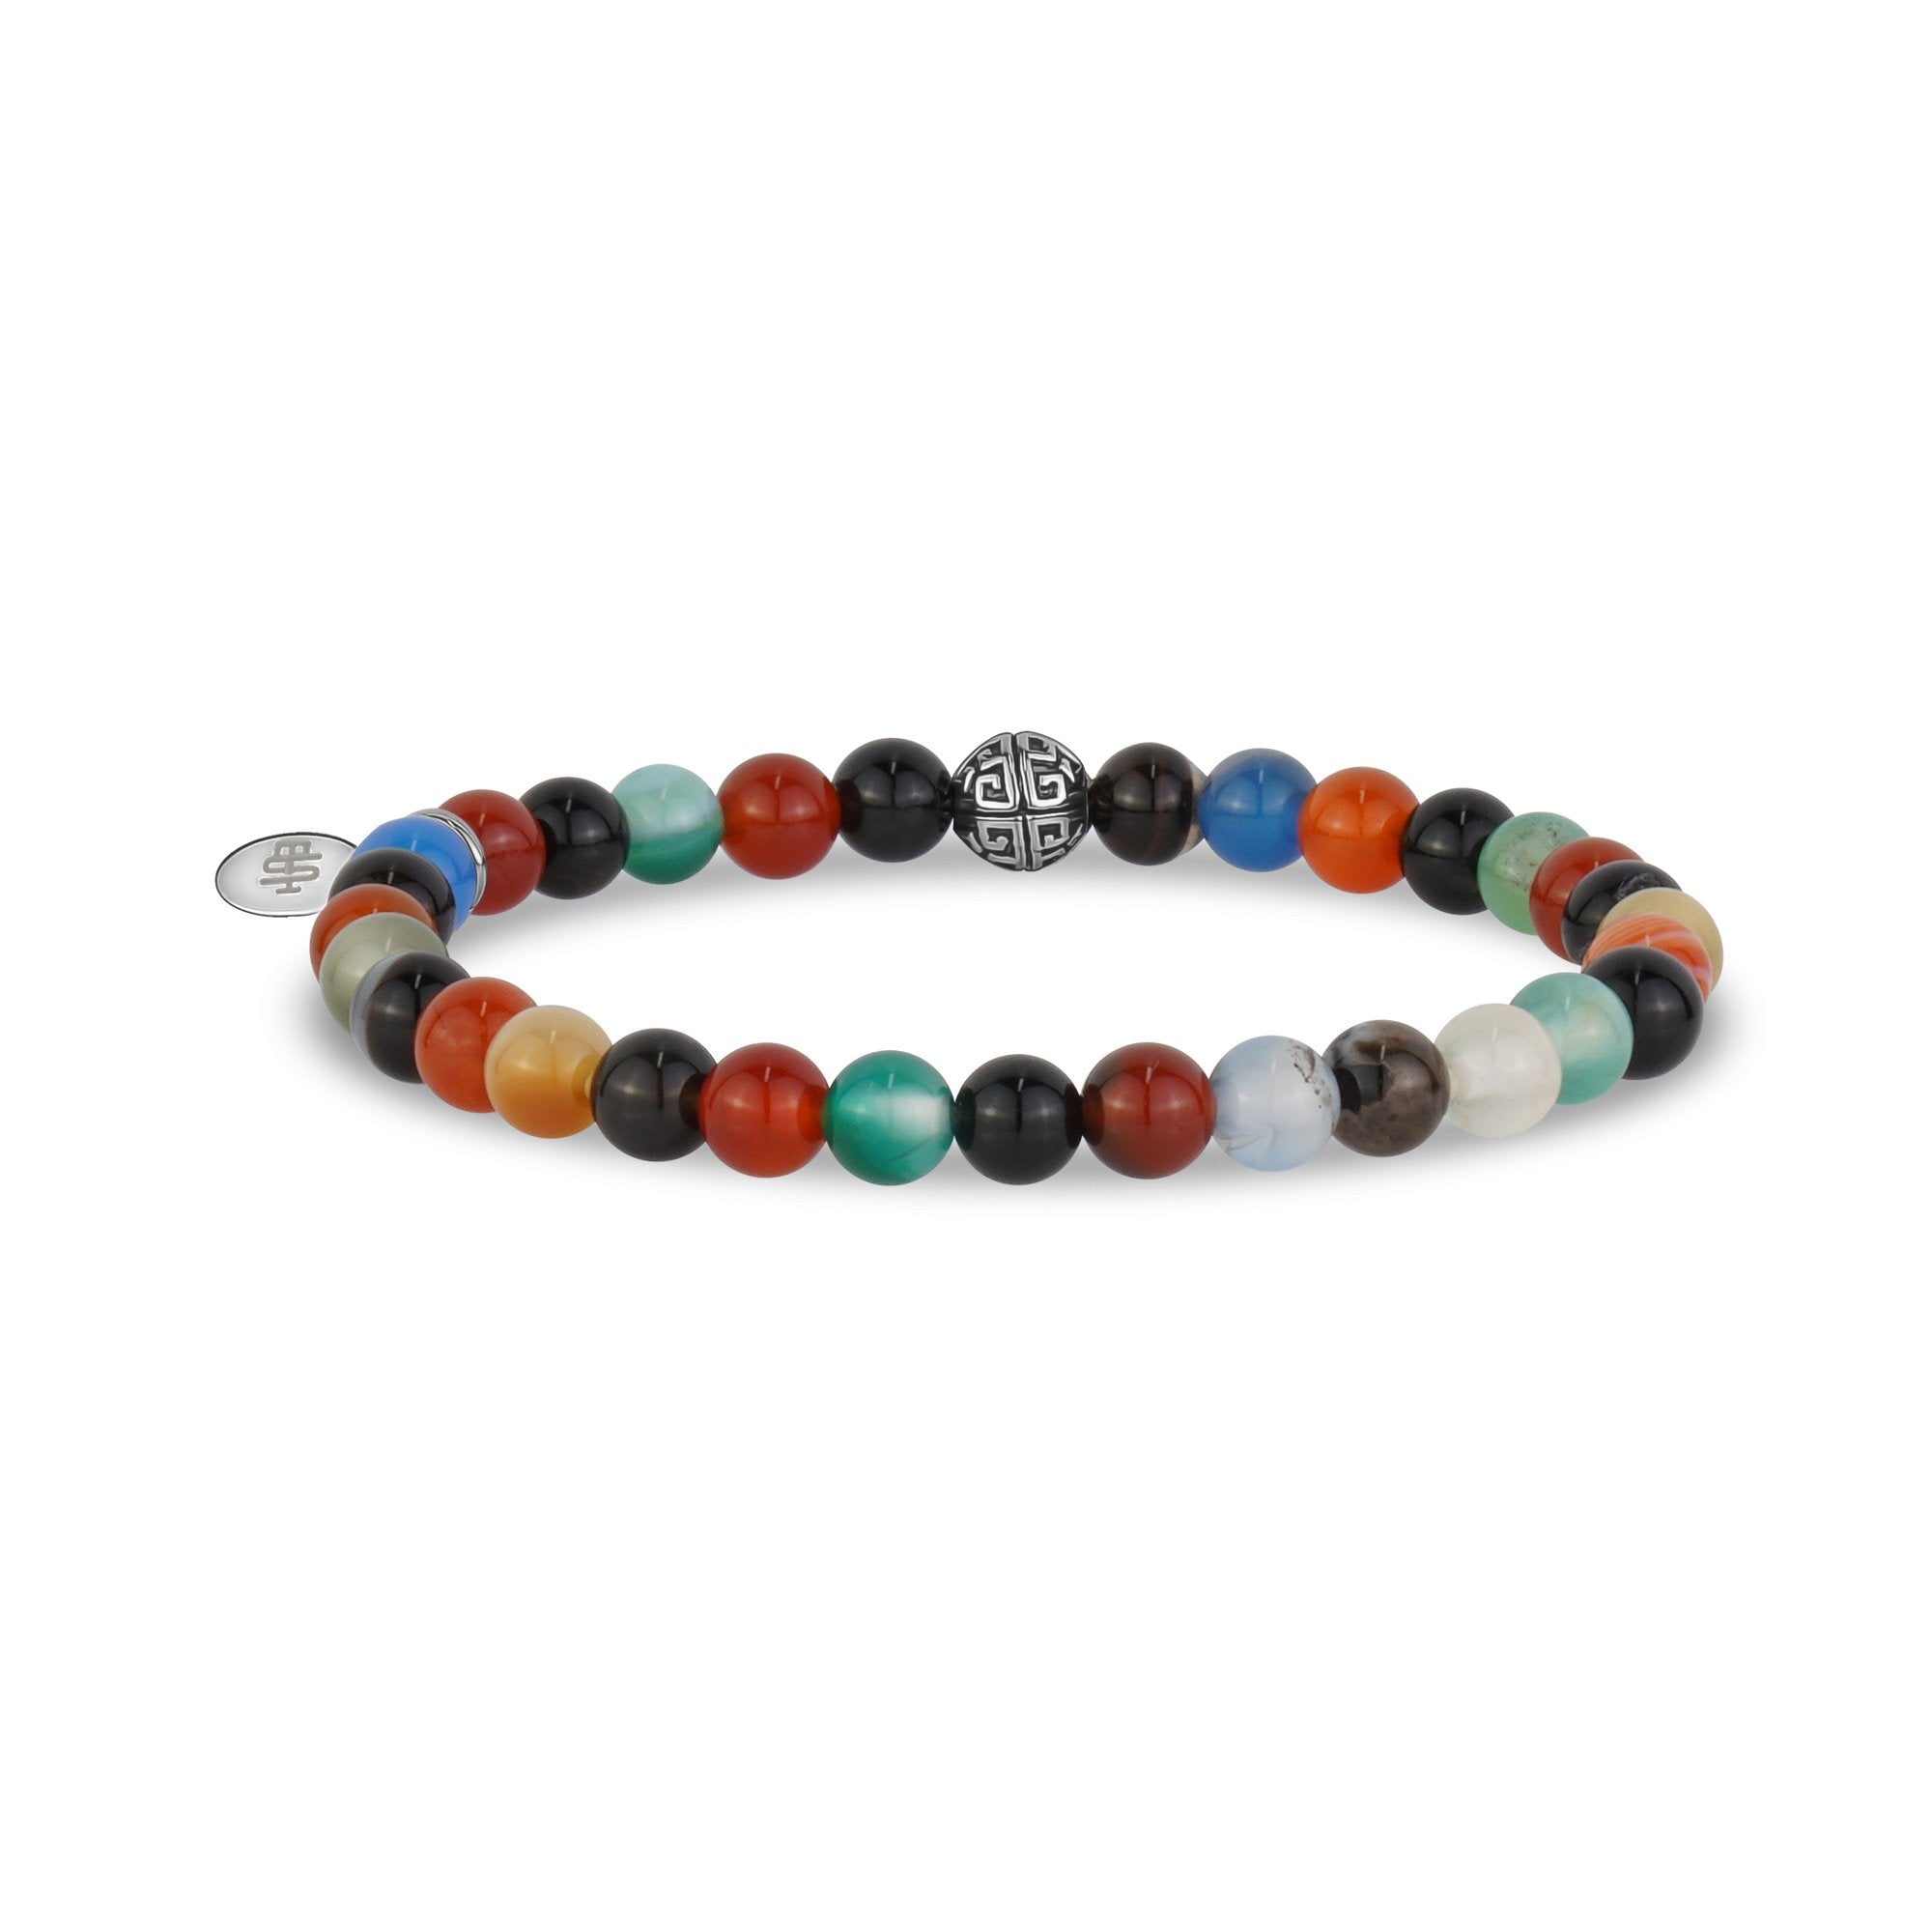 Unisex Bead Bracelet - 6mm Multicolor Agate Stretch Bead Bracelet